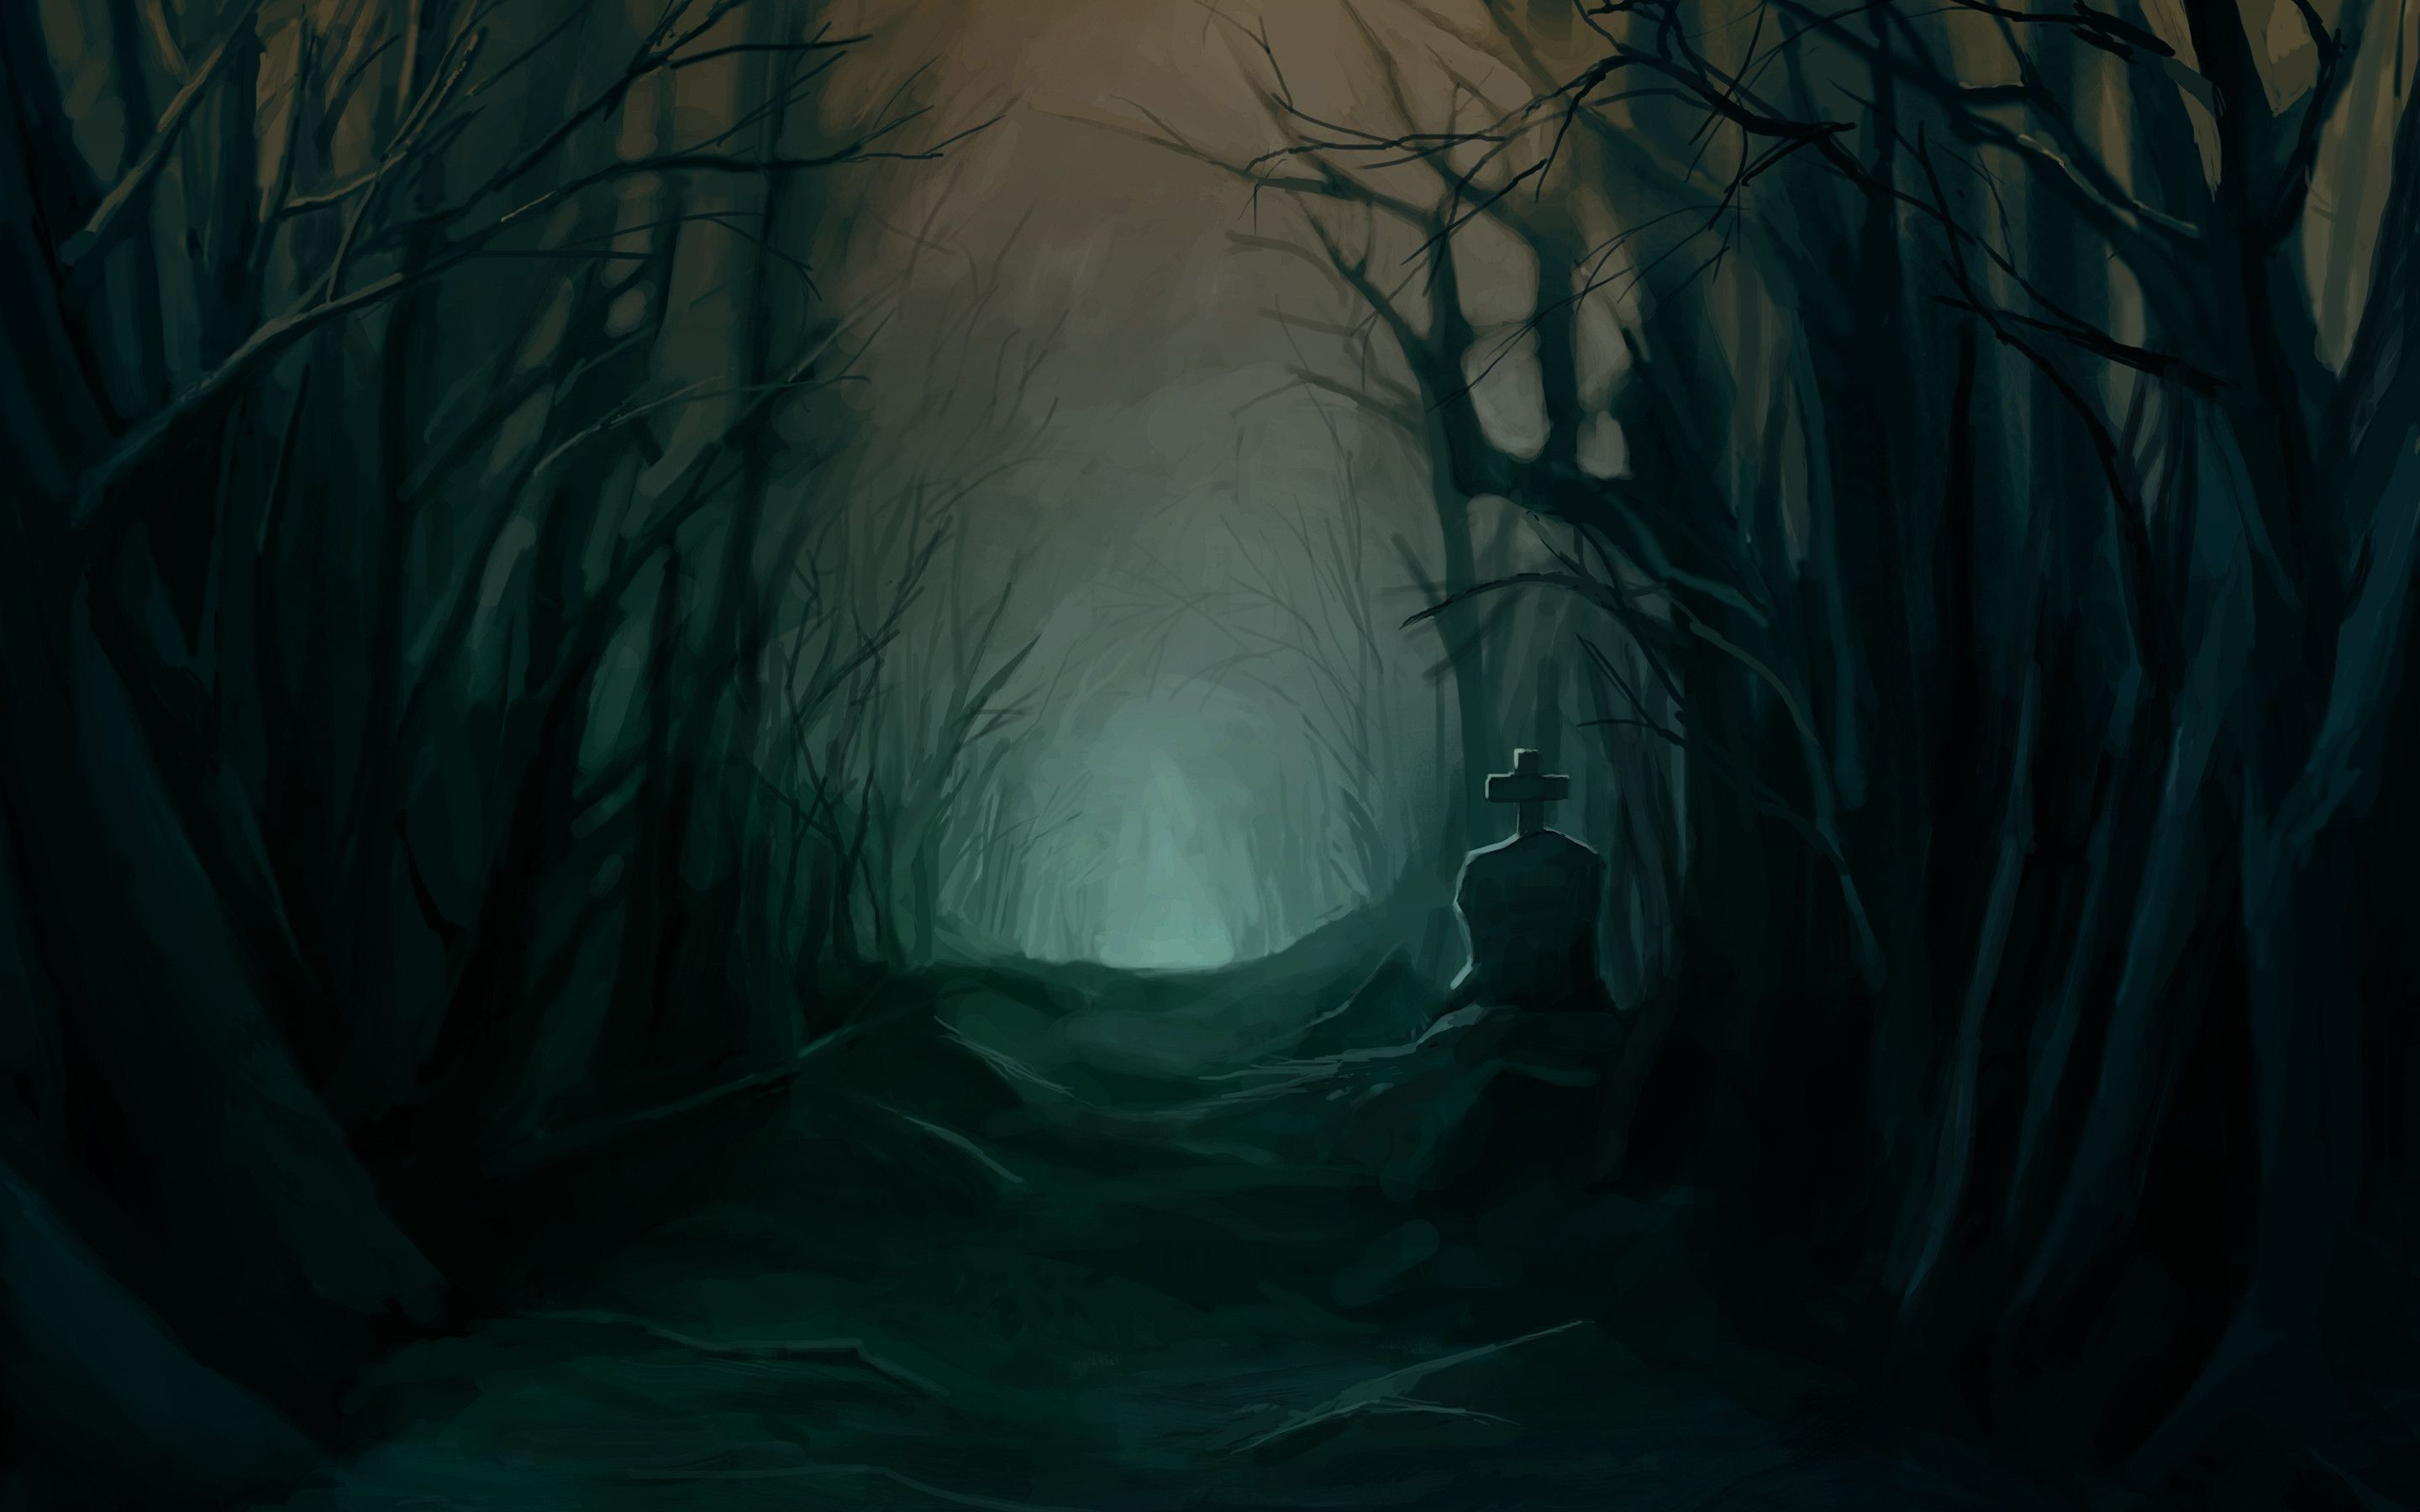 2880x1800 Wallpaper Dark Forest, Creepy, Grave, Path, Scary, Trees .